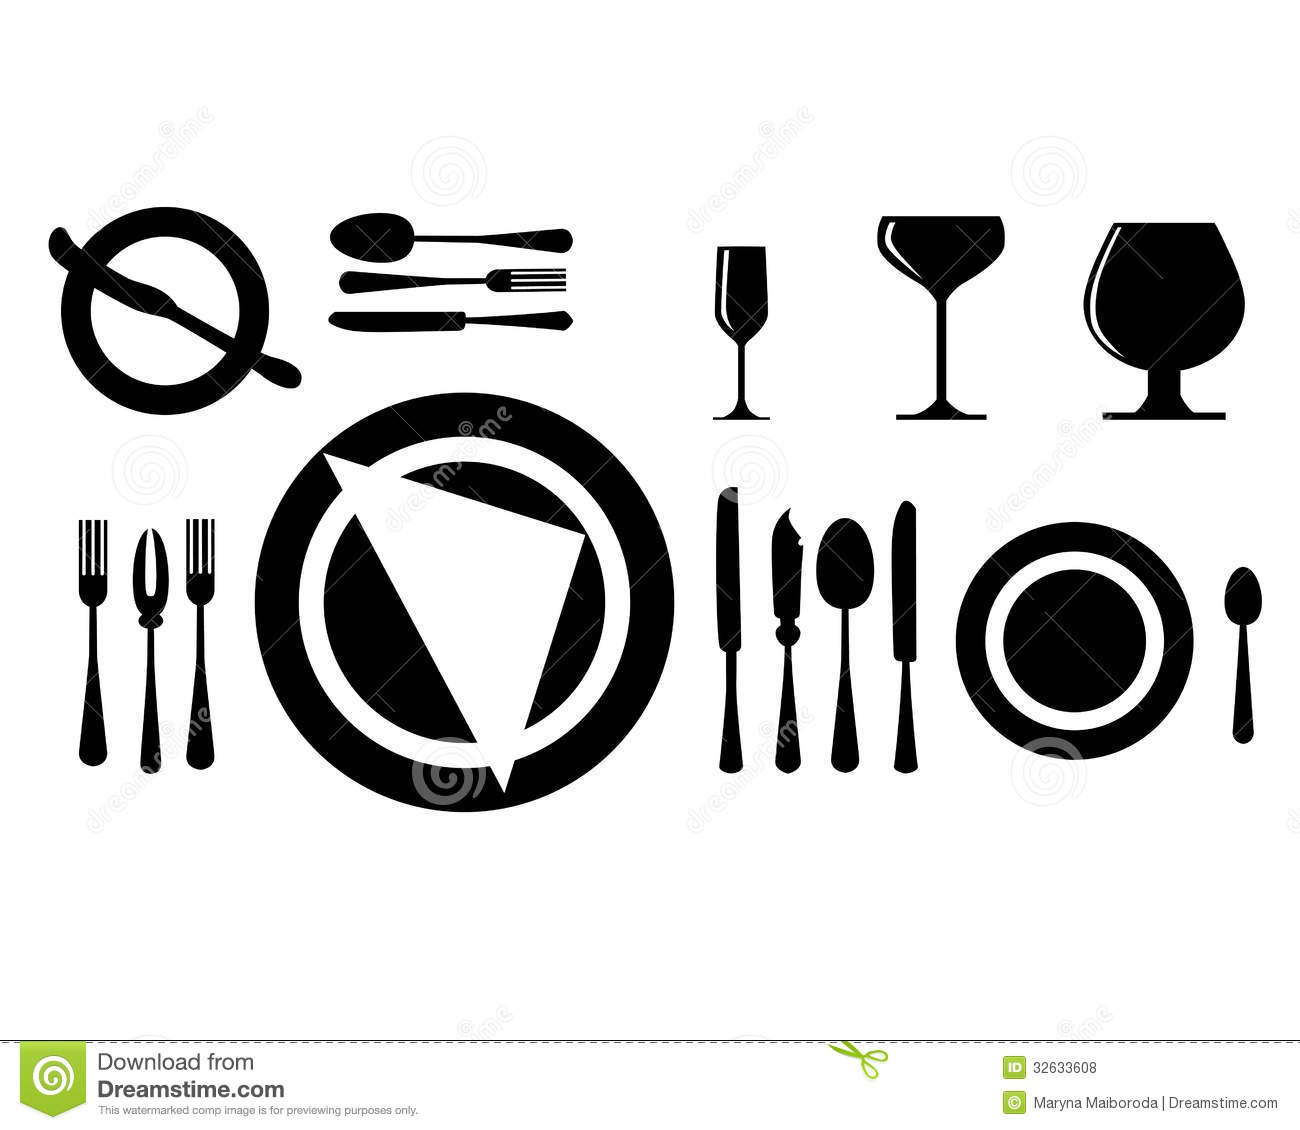 Cutlery Royalty Free Stock Photos Image 32633608 : cutlery vector black silhouettes etiquette no background 32633608 from www.dreamstime.com size 1300 x 1130 jpeg 85kB